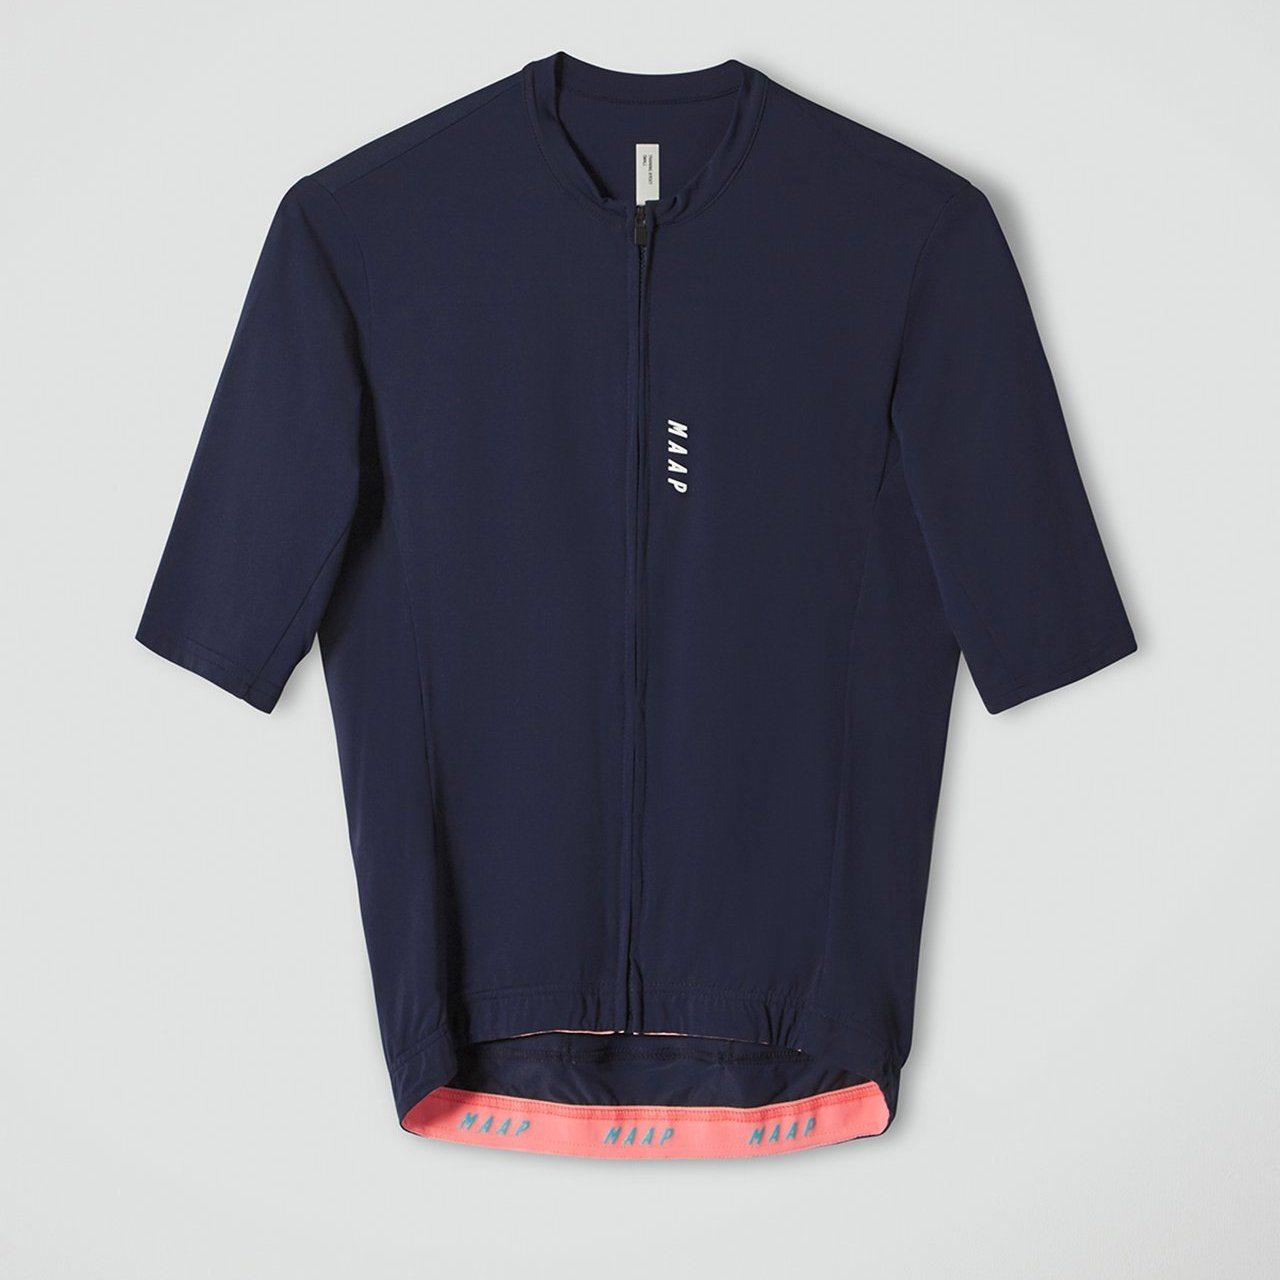 Training Jersey - Navy Cycling Jersey MAAP XS